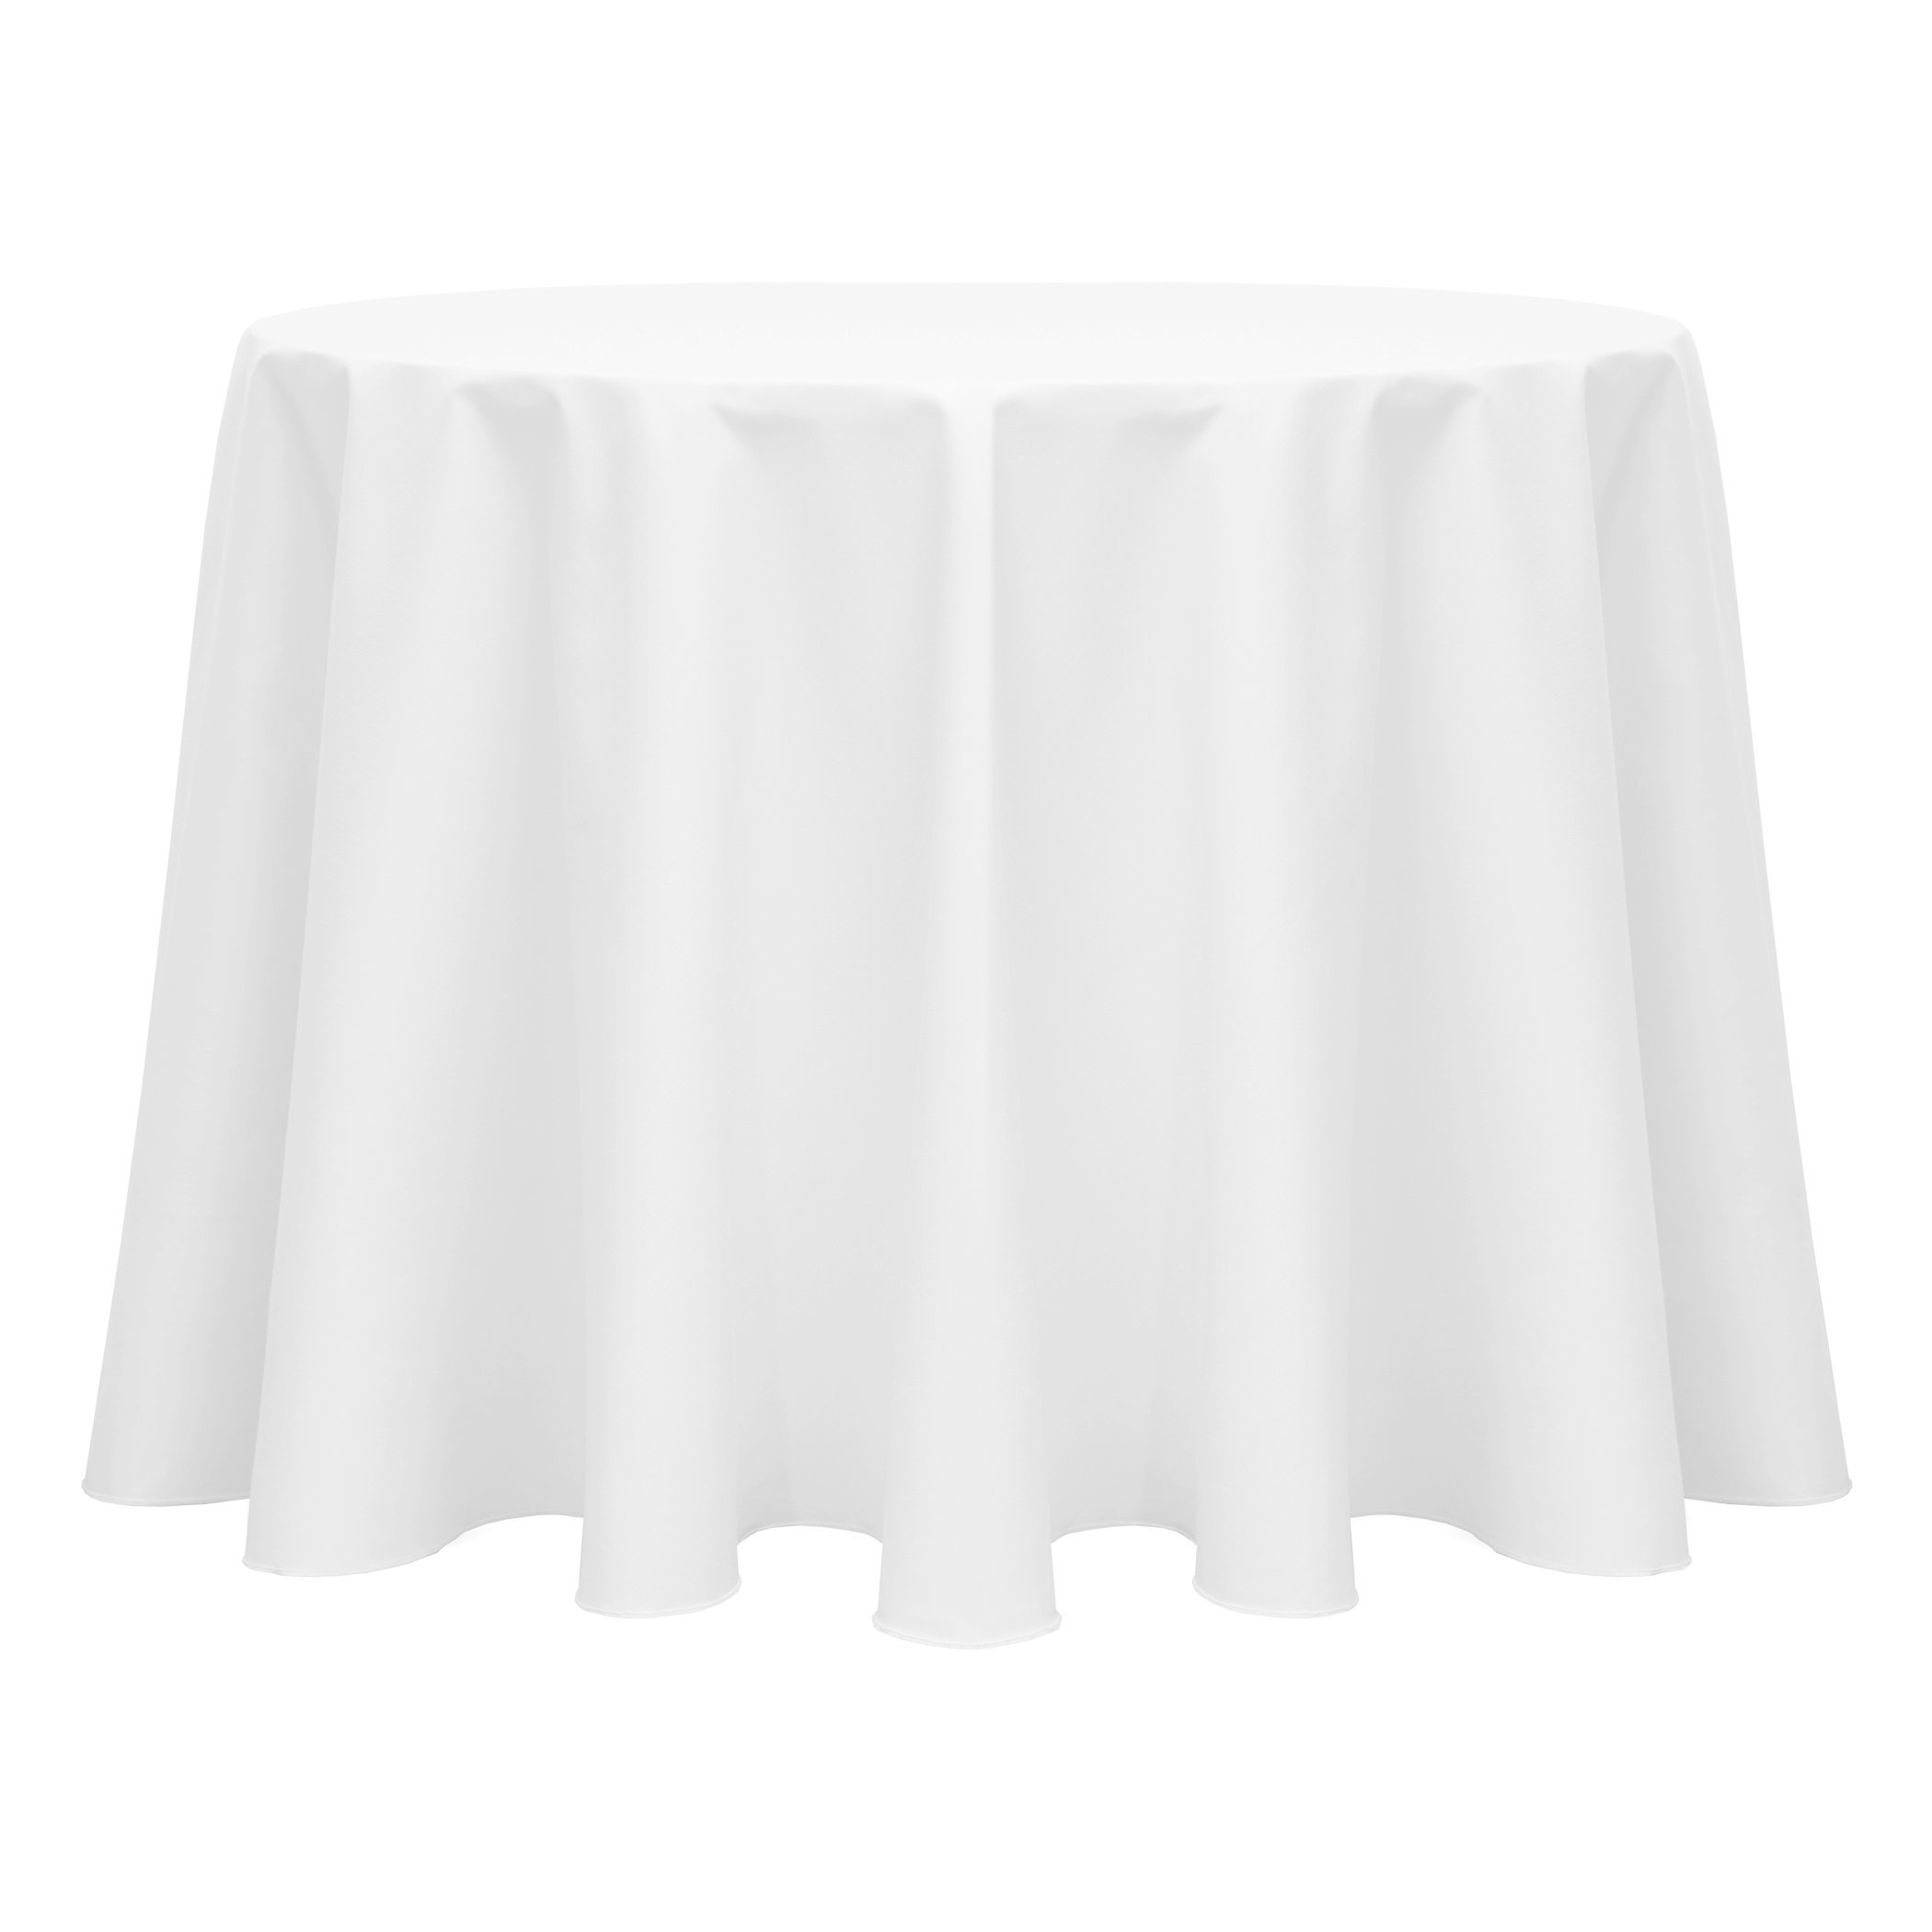 Ultimate Textile (3 Pack) Poly-cotton Twill 120-Inch Round Tablecloth - for Restaurant and Catering, Hotel or Home Dining use, White